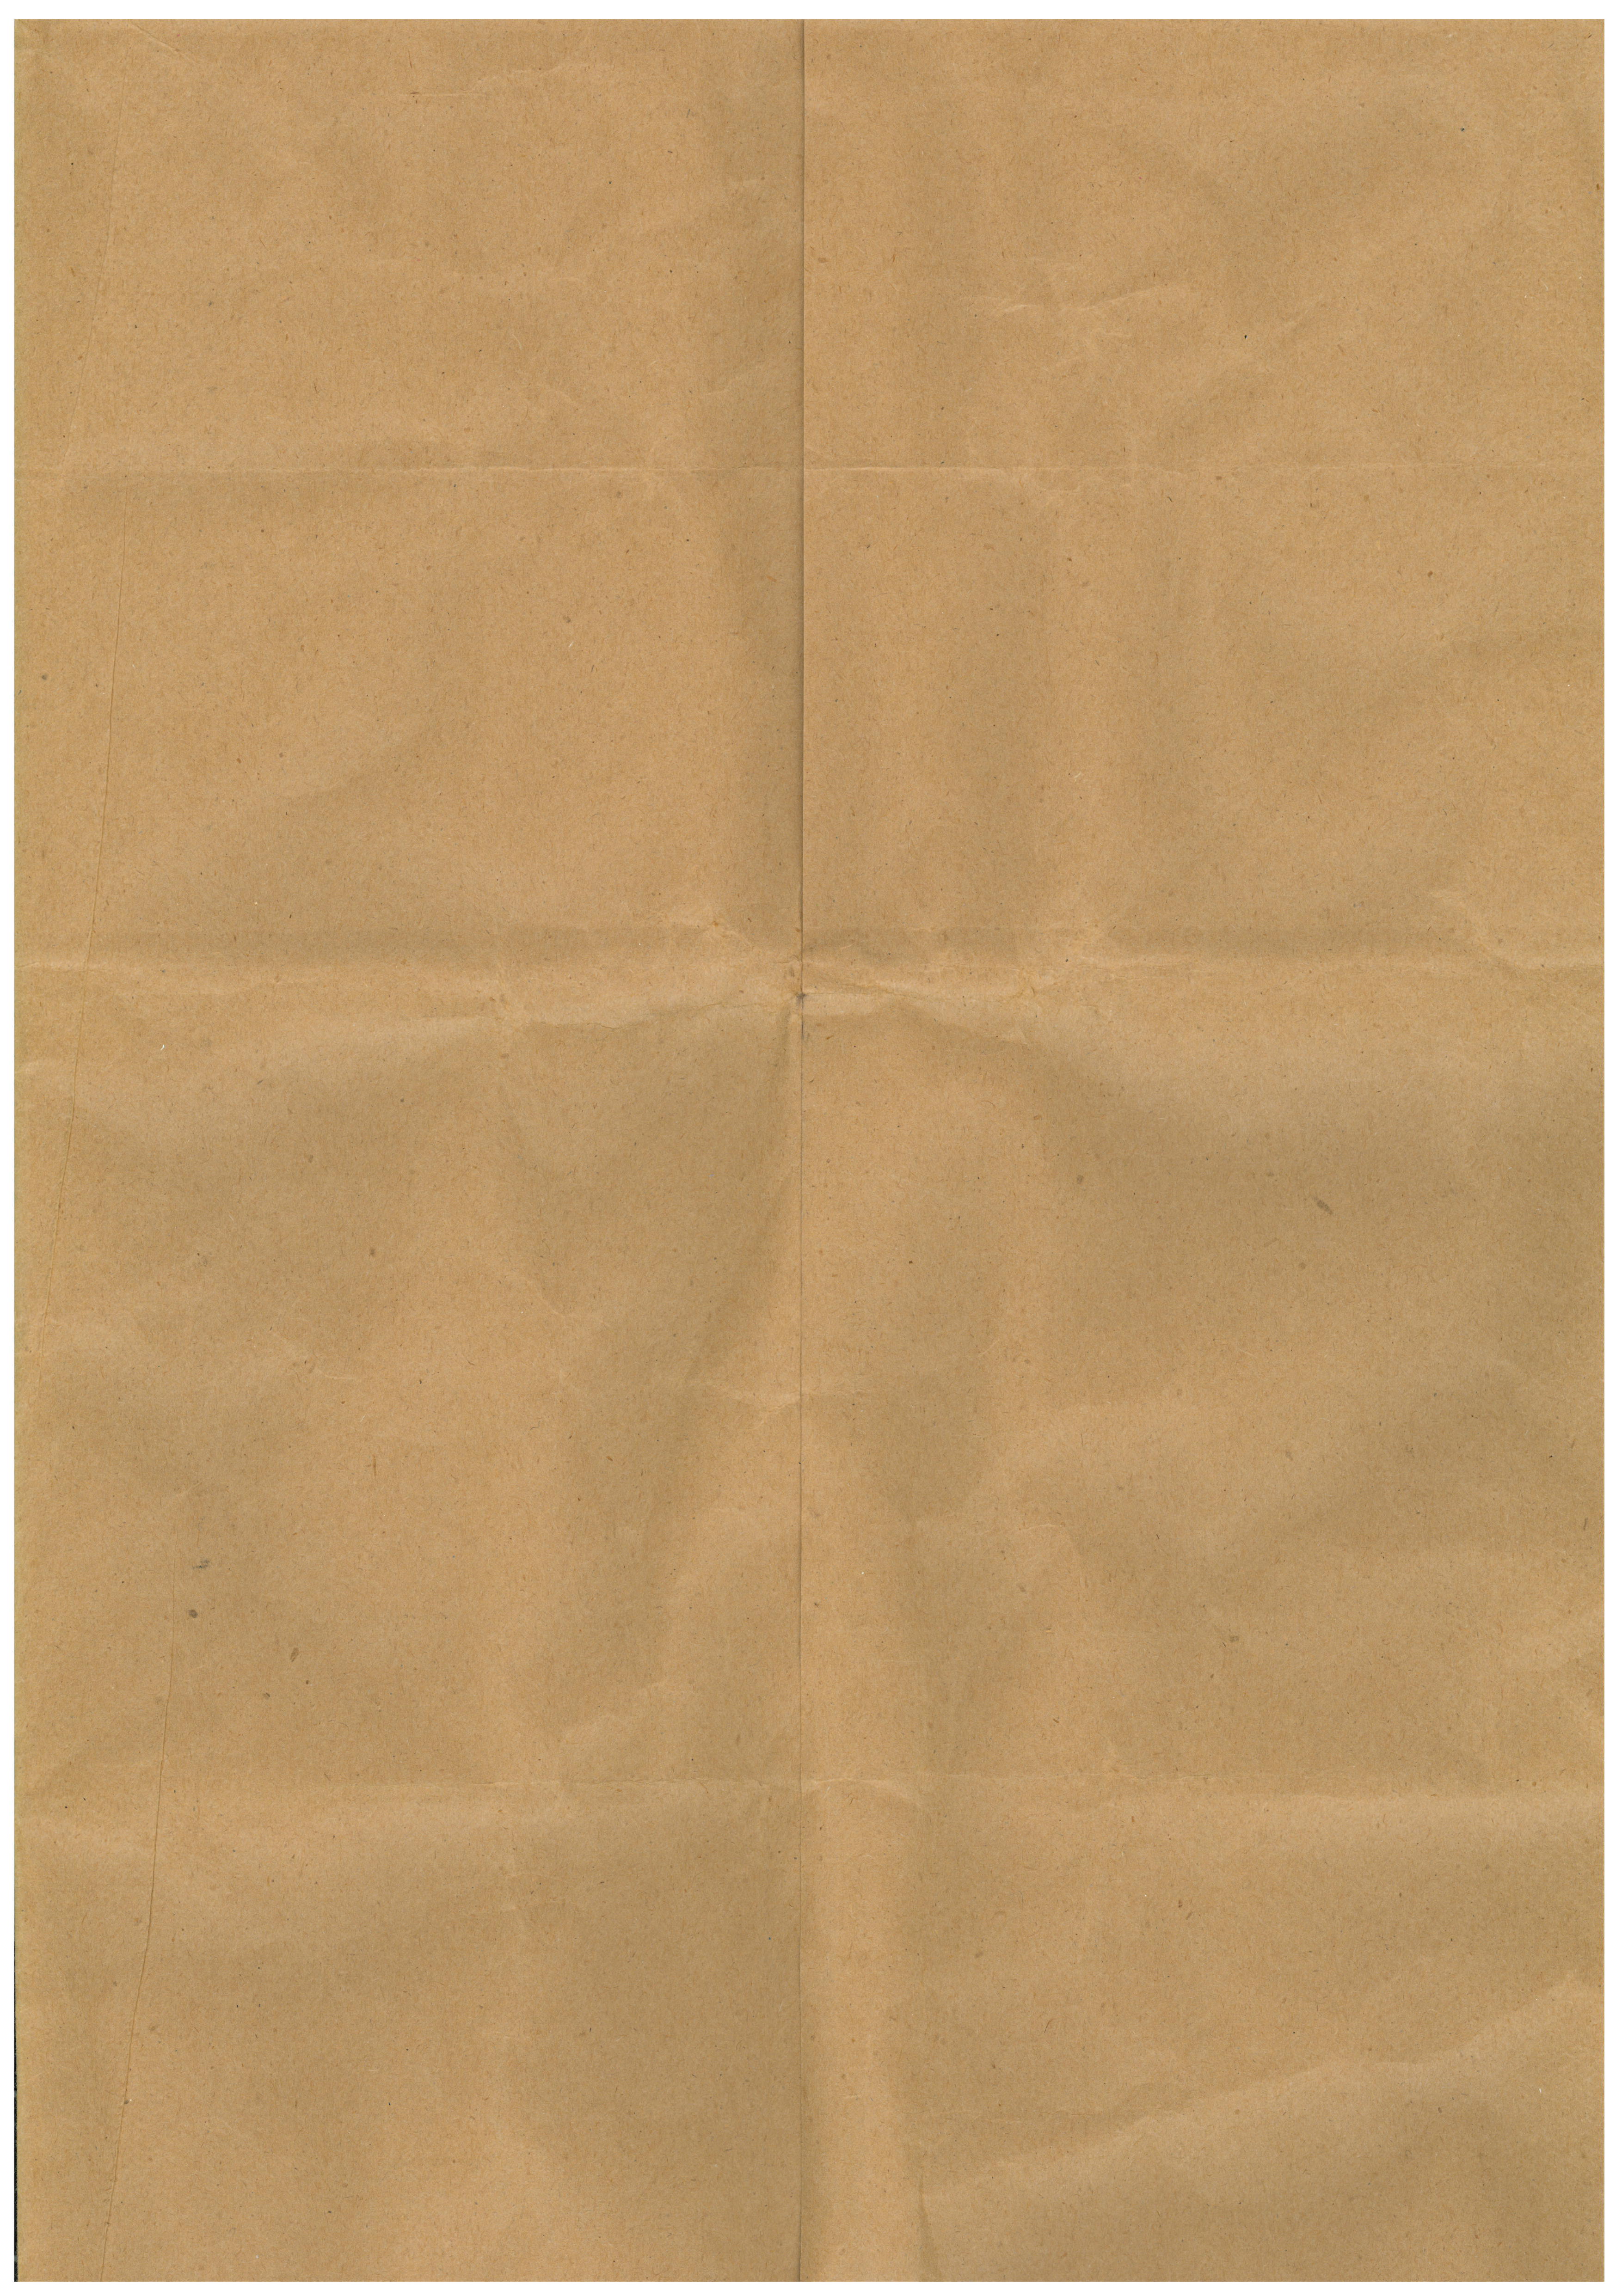 Brown Paper Bag Texture By Clipart   Free Clip Art Images